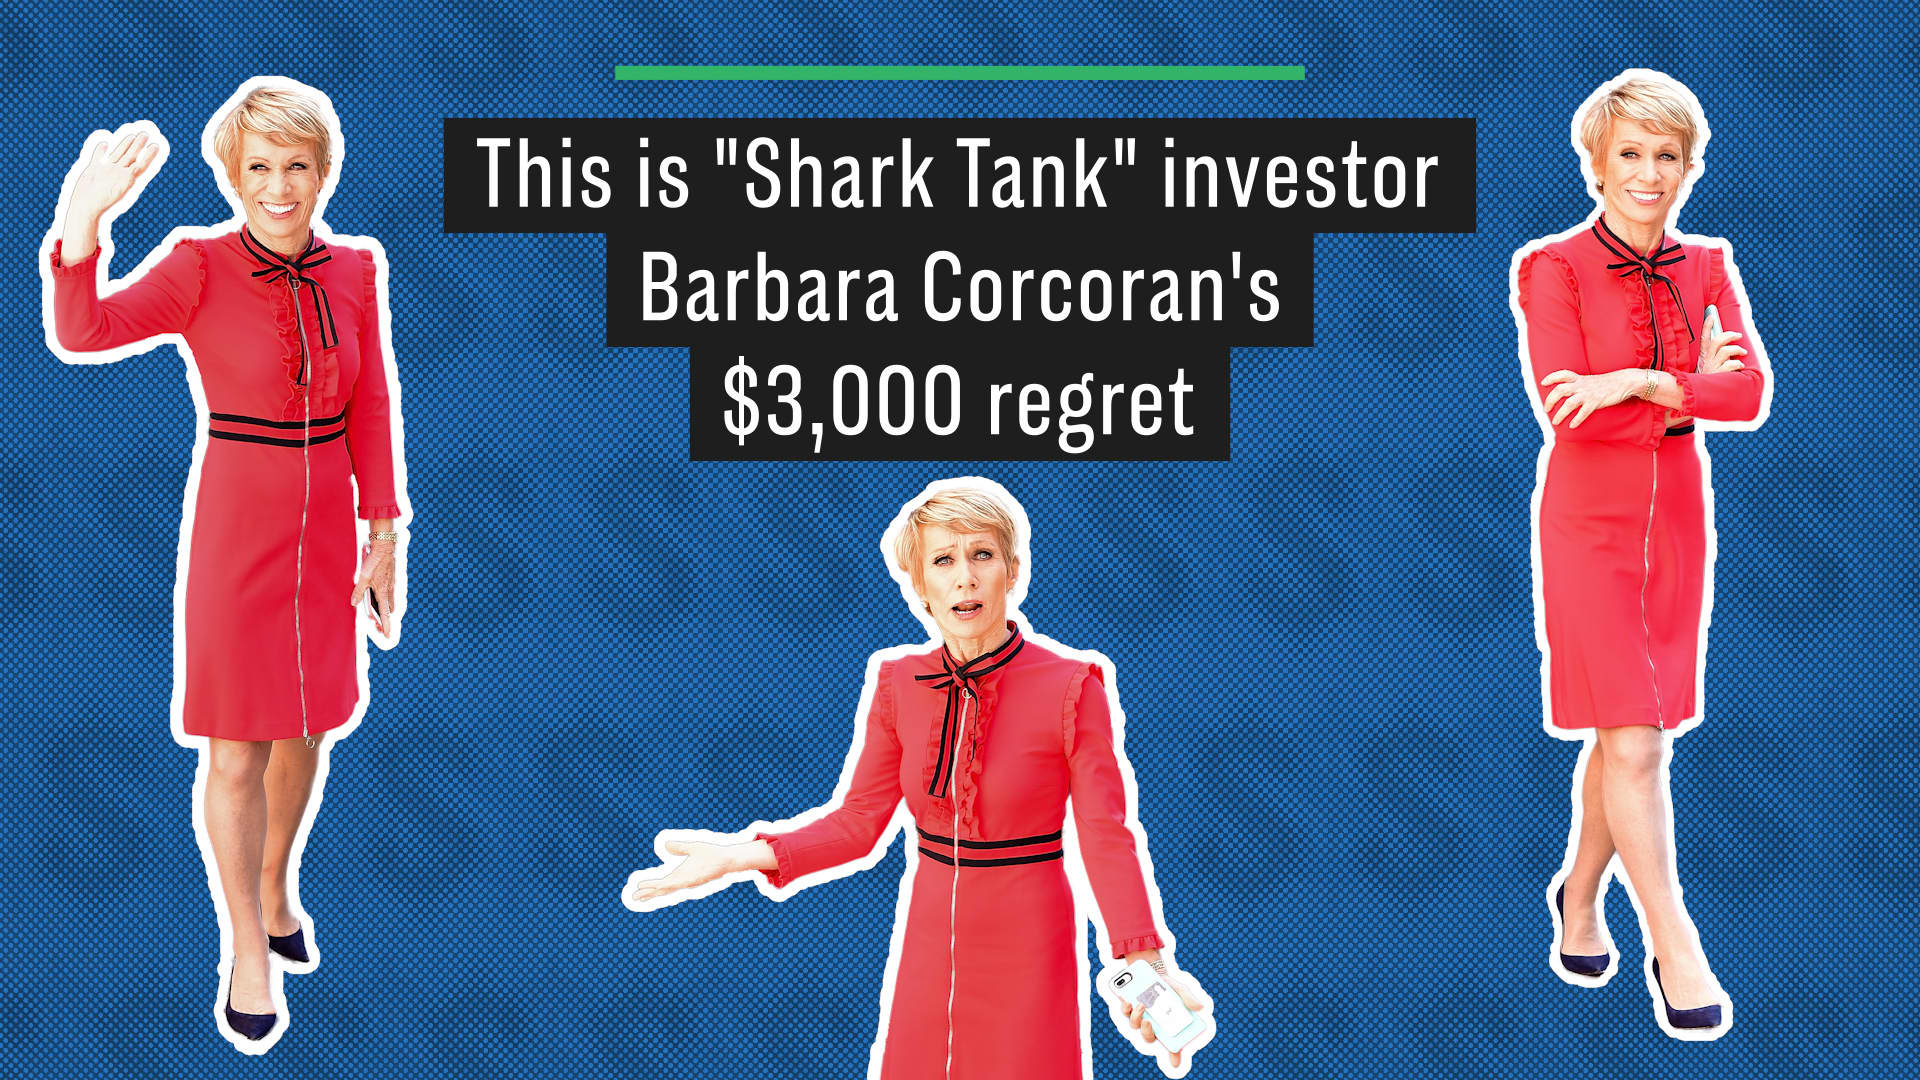 Kevin o leary and barbara corcoran relationship